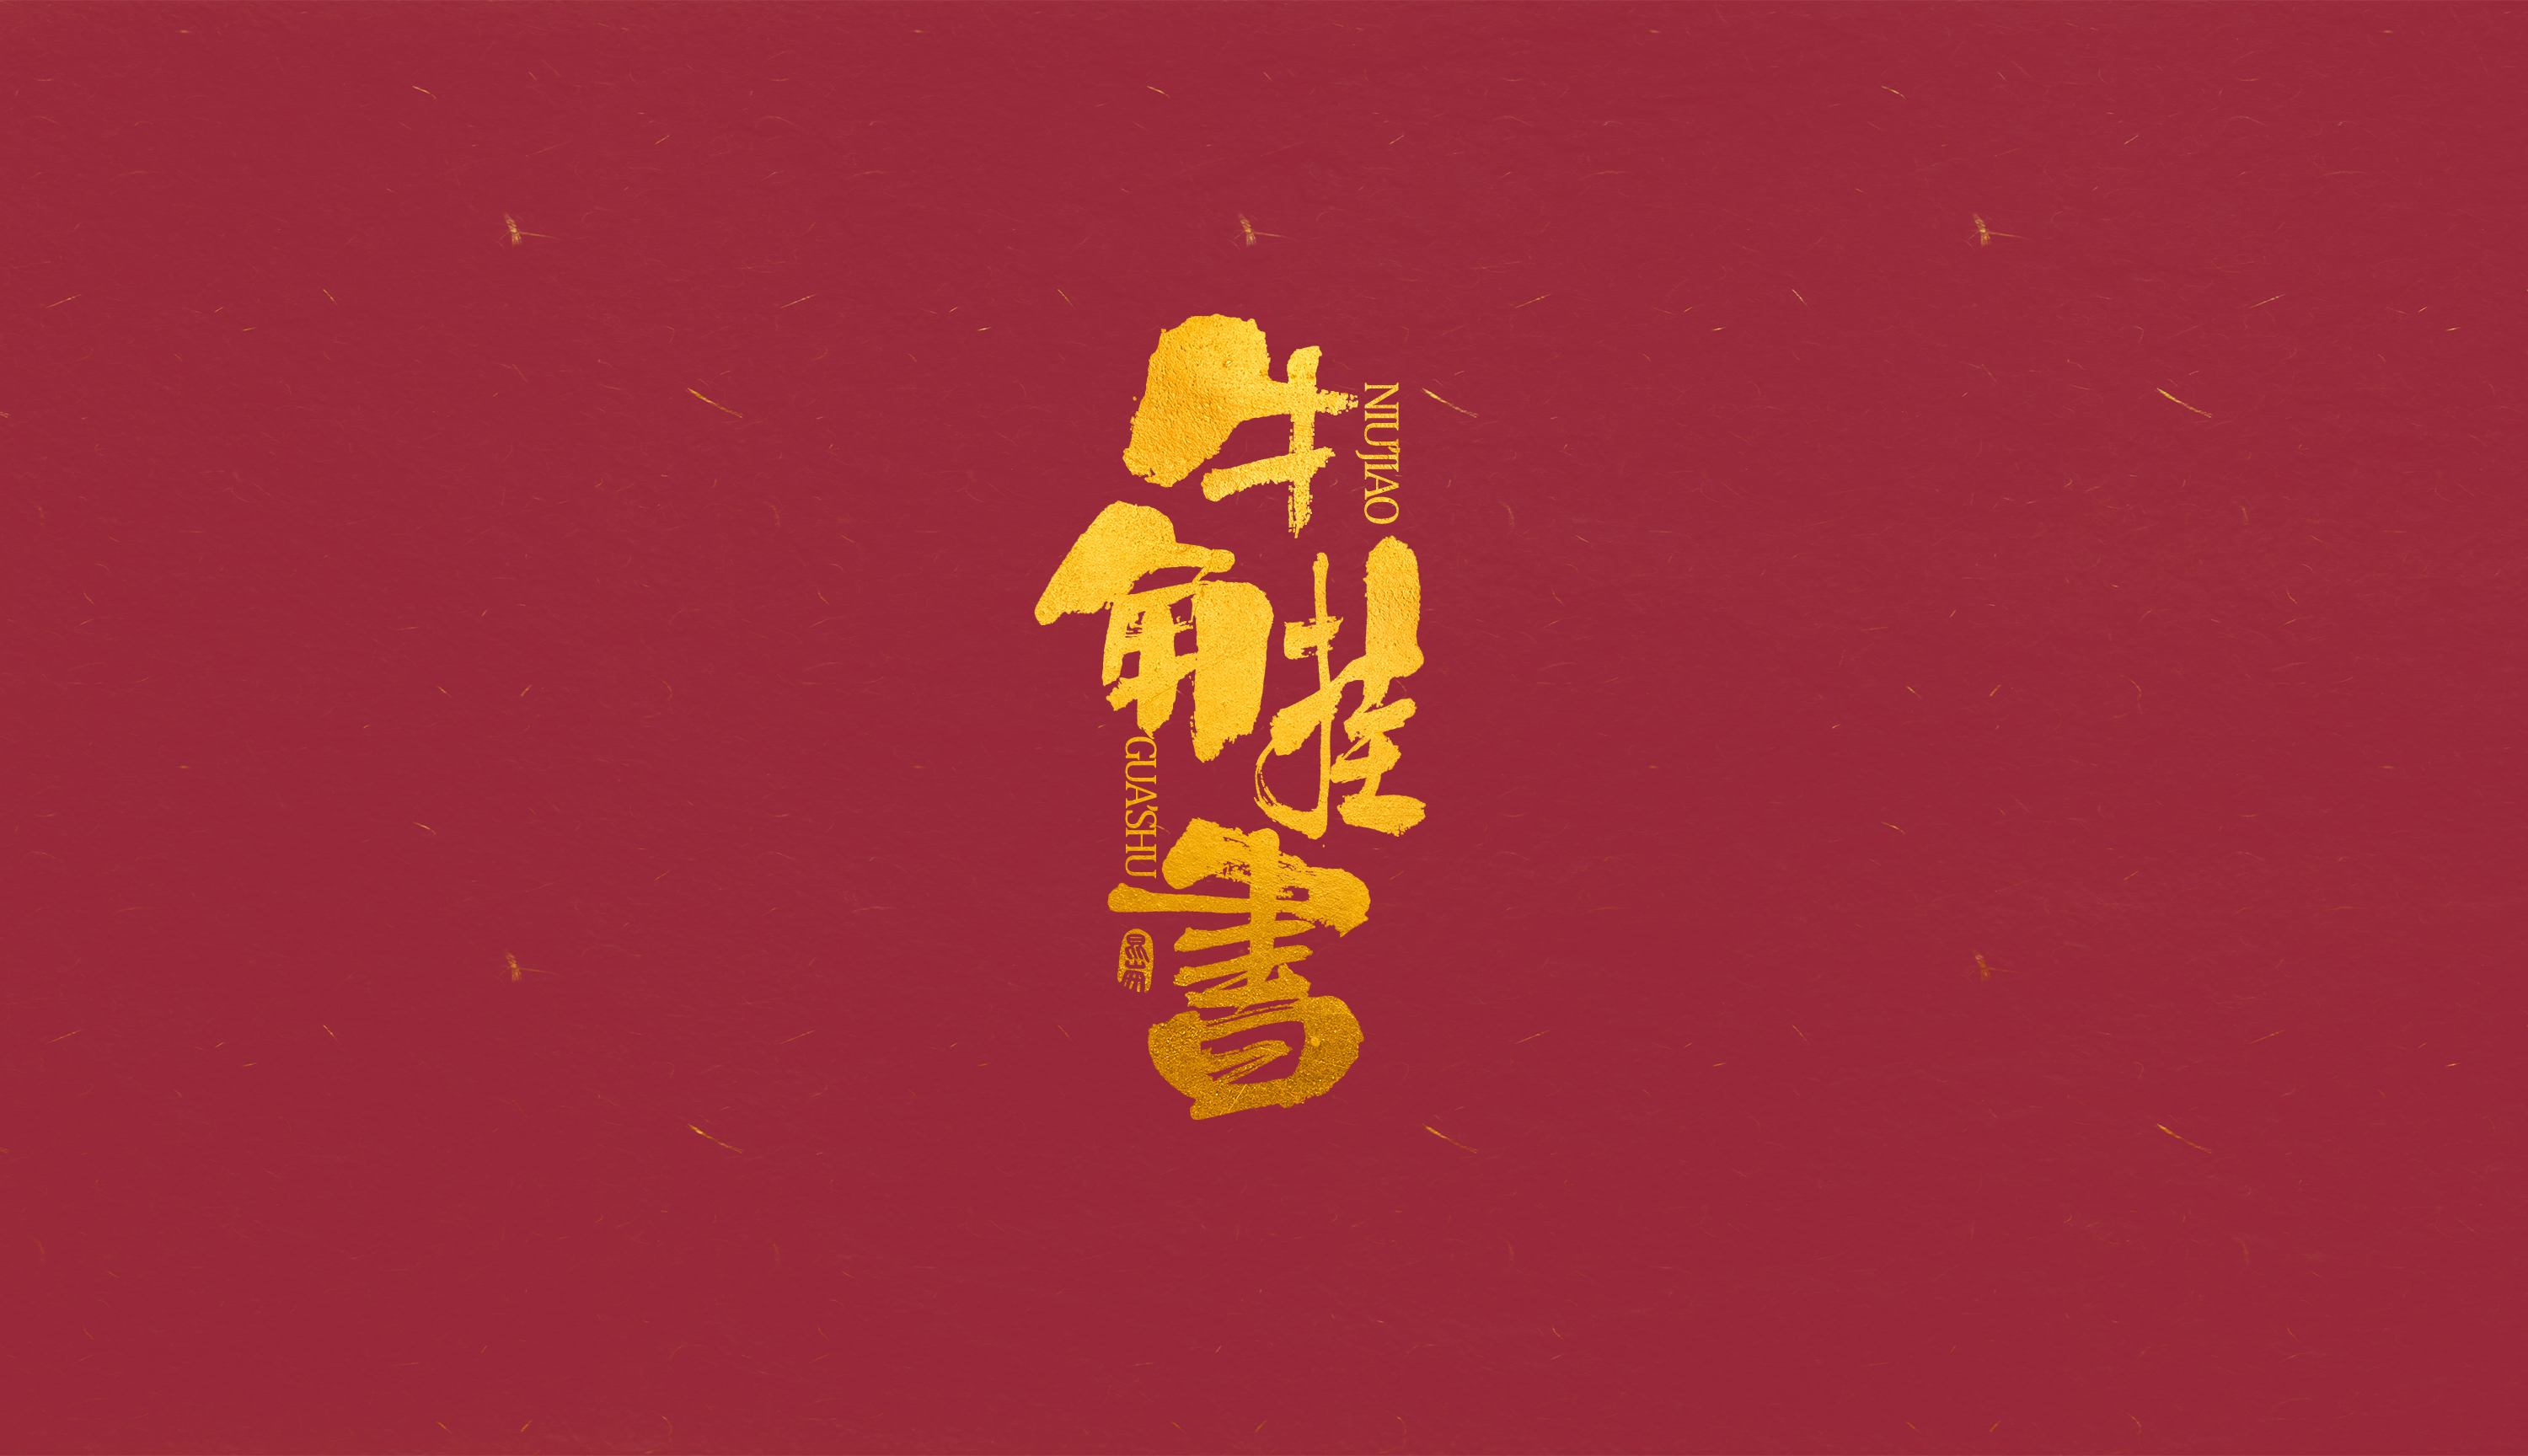 Font Design of Year of the Ox greetings